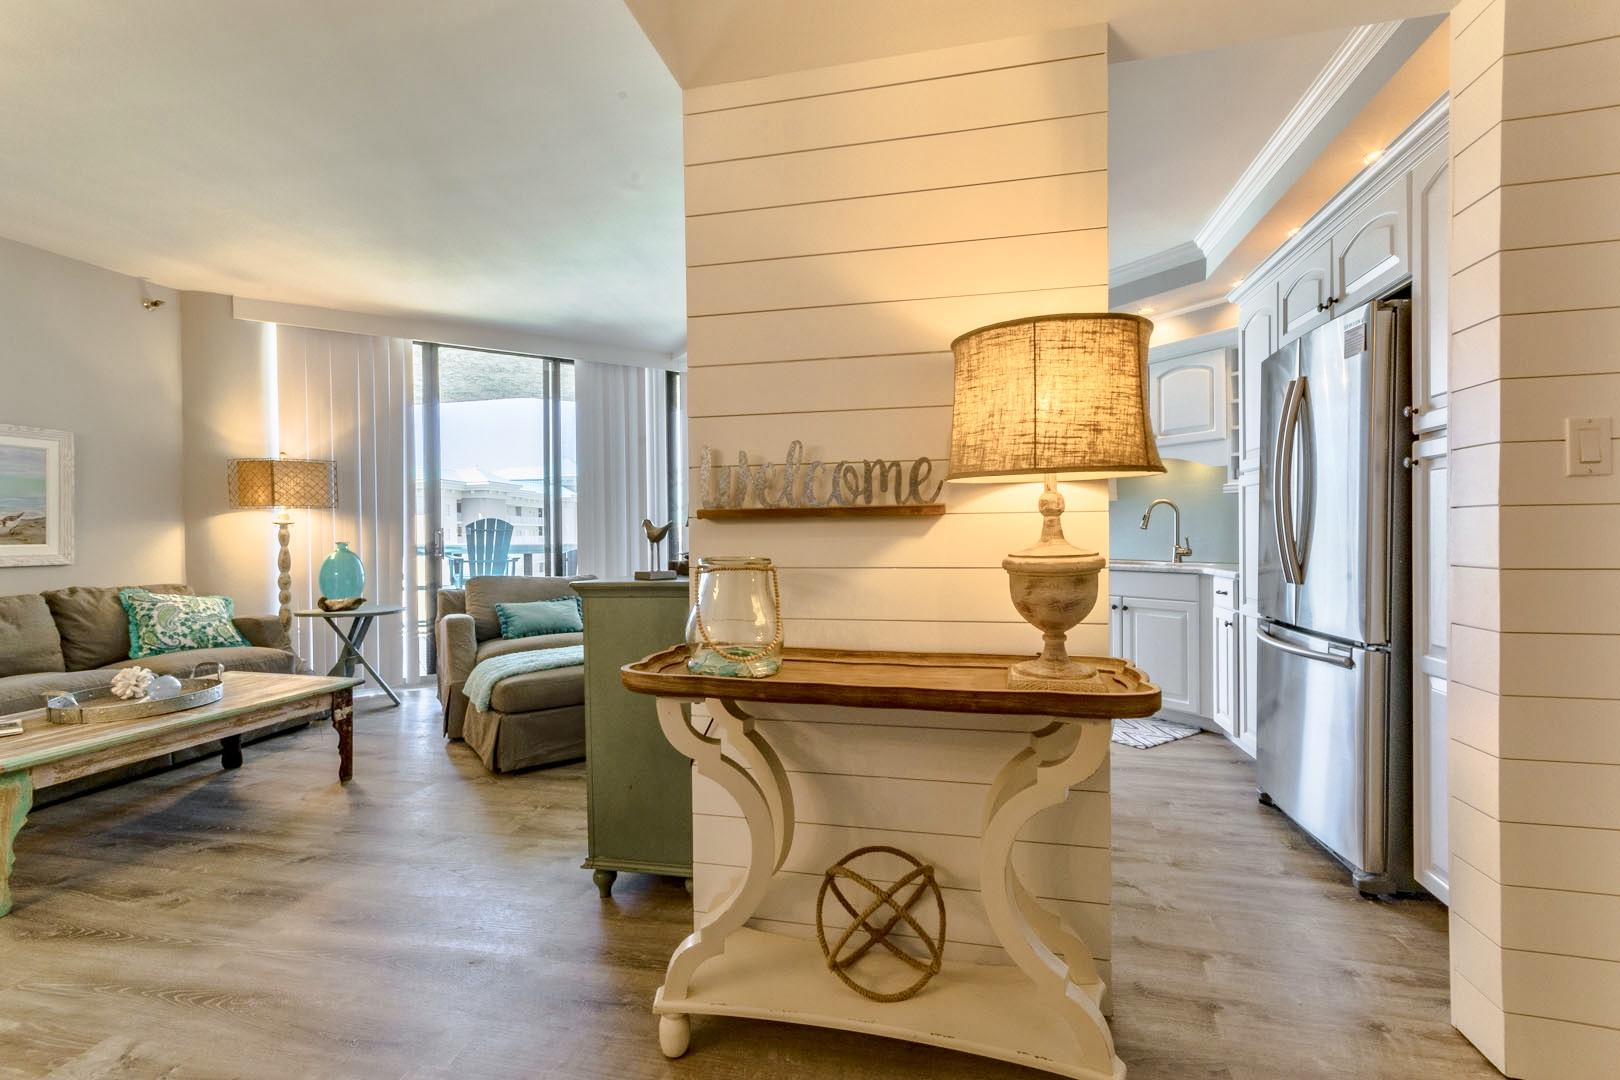 This is a fully renovated, professionally decorated, absolute GEM of a condo in Surfside!  From the moment you step foot into this condo you will immediately sense that no detail has been overlooked.  All new updates include flooring, kitchen/bathroom countertops, kitchen/bathroom cabinetry, tiled baths, paint, shiplap and trim, lighting, appliances, all new furnishings, deck furnishings, linens, decor, and more.  This unit has been professionally decorated and it shows!  A complete list of upgrades are available upon request. Surfside is located in Miramar Beach on Scenic Highway 98.  Breathtaking views of the white sand beaches and emerald green waters can be enjoyed from the huge outdoor balcony.  And there is a private walkover to the beach from the Surfside pool deck area.  Surfside has a tremendous reputation and a track record for retaining repeat guests.  Because this unit has a lockout bedroom this can be rented as a 3 bedroom, 2 bedroom, or 1 bedroom which allows you to maximize rental income potential.  This unit had gross rental income of over $47,000 in 2018 and with bookings of over $41,000 already for 2019 it is on pace to surpass that number this year.  Surfside amenities also include the Royal Palm Grille restaurant, covered parking garages (one for owners and one for guests), large pool deck with heated pool, sauna, fitness center, lighted tennis courts, basketball, shuffle board, pool side Tiki Hut/beach bar, and spa and hair/nail/facial salon.  The Silver Sands outlet malls, and many restaurant options are just a few minutes away.  If you are looking for a completely turnkey condo right in the heart of it all in popular Miramar Beach, look no further!  Please call today!